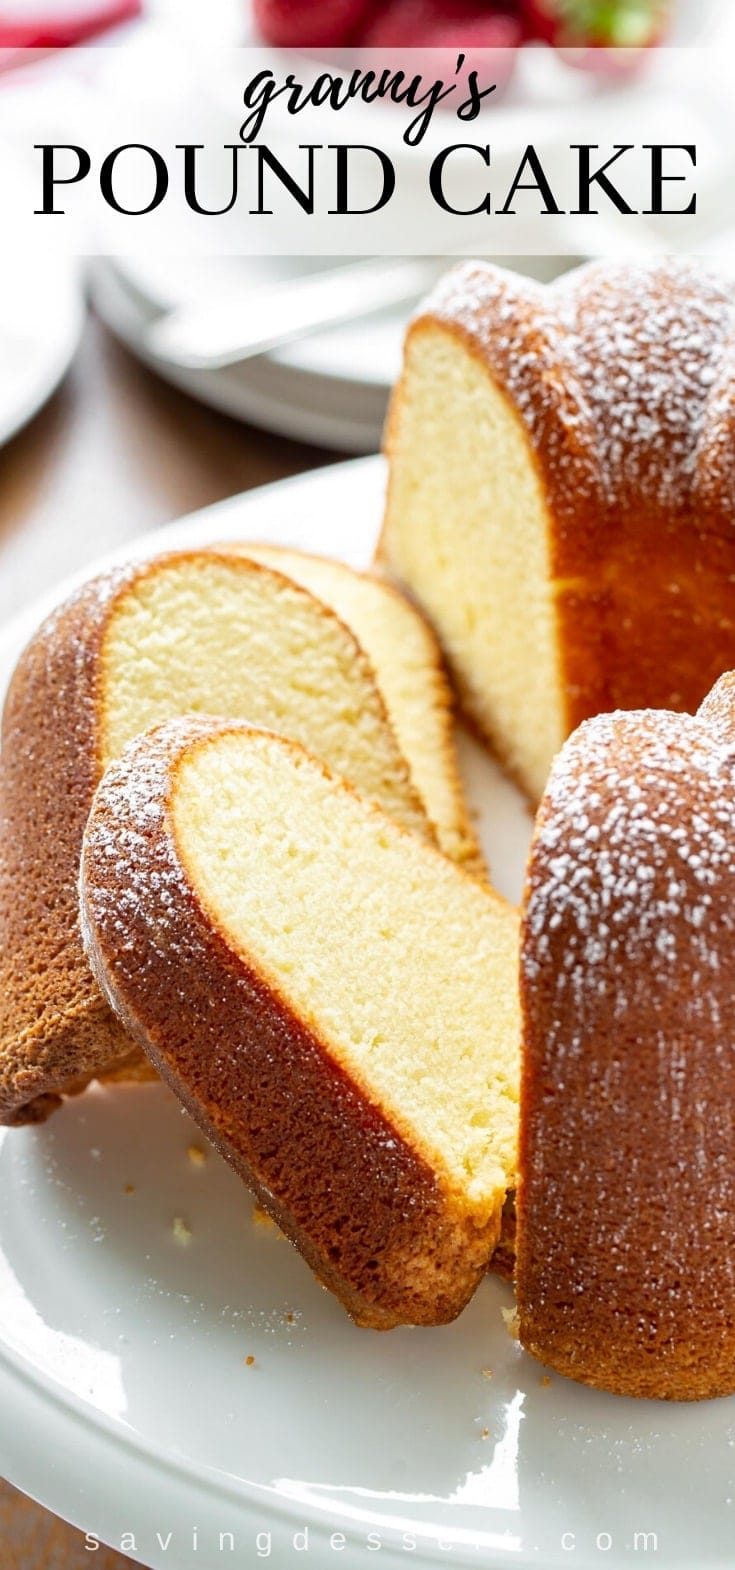 A sliced pound cake topped with powdered sugar